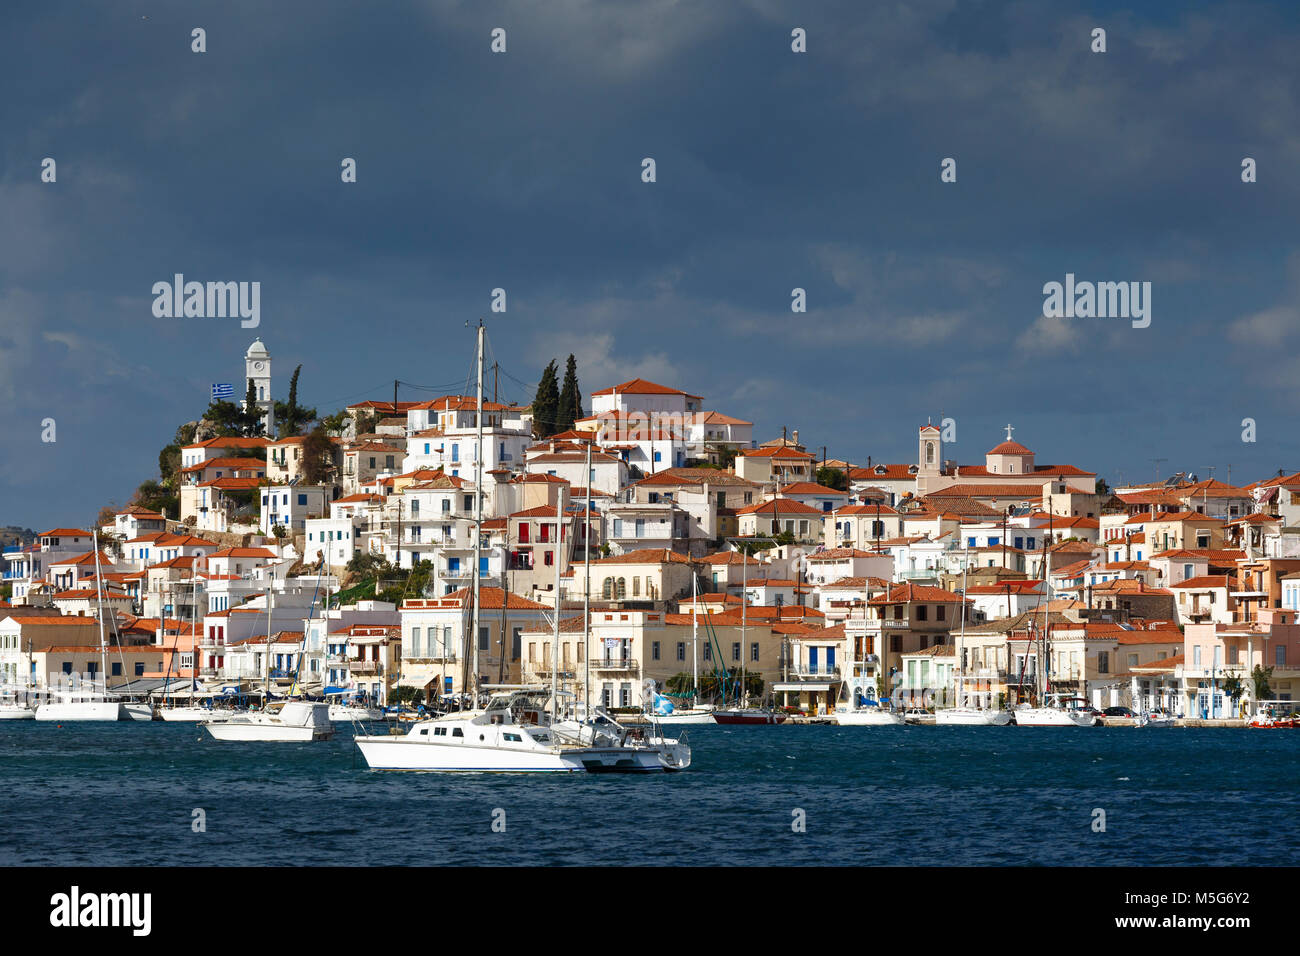 View of the Chora village of Poros island over the sea, Greece. Stock Photo